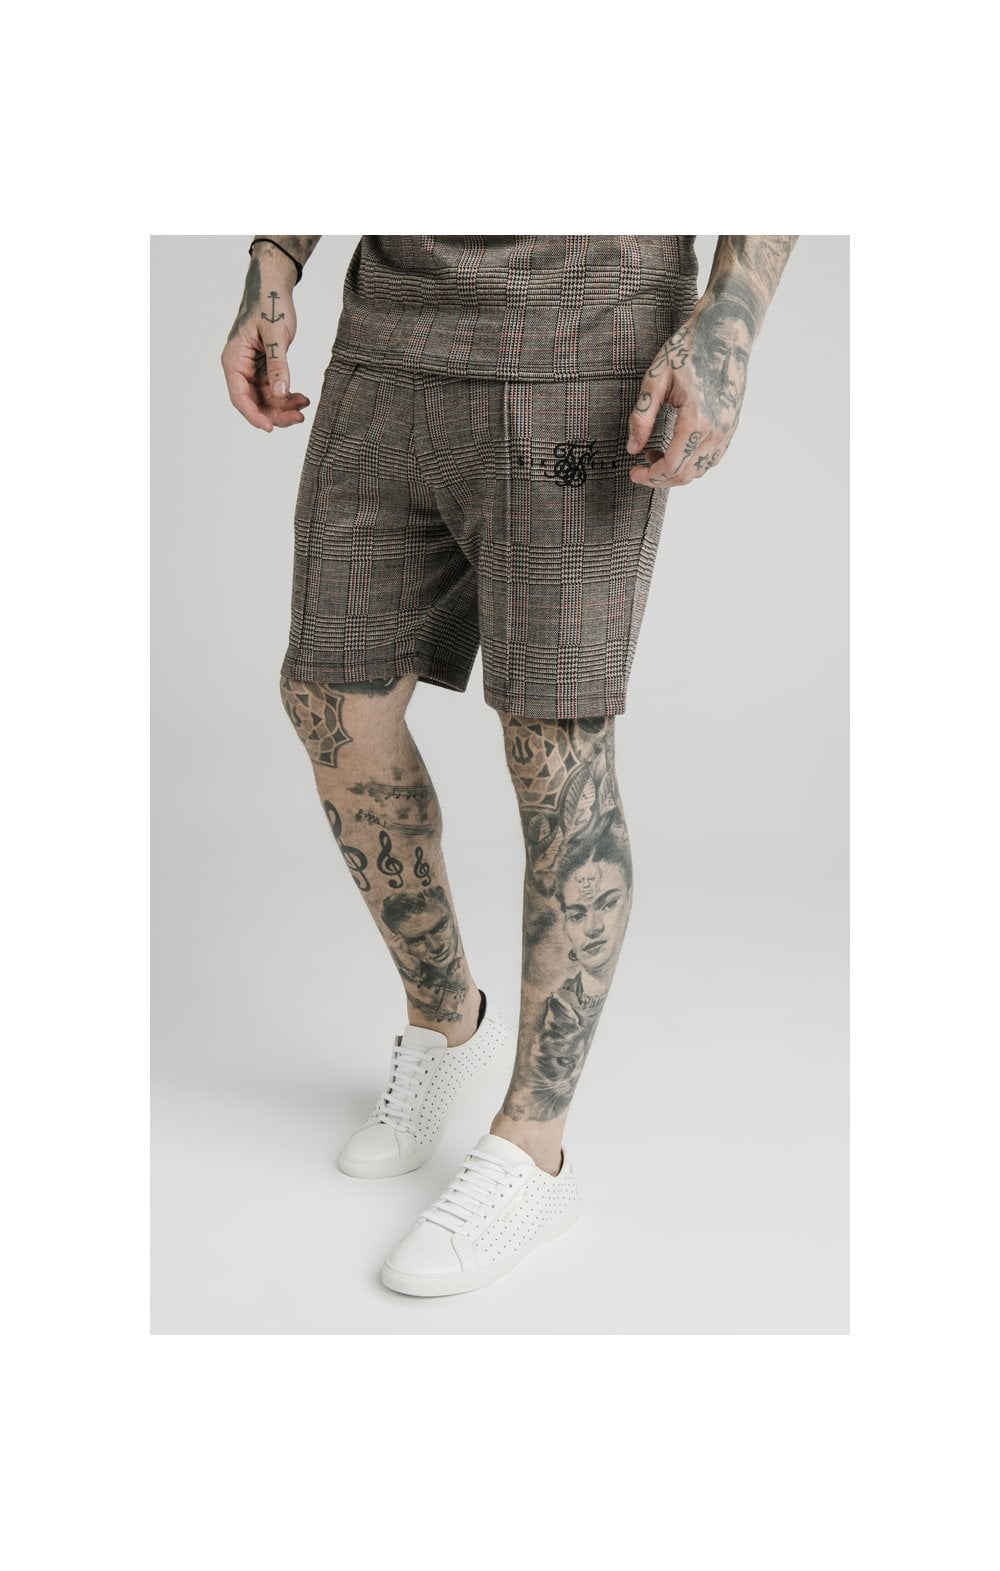 SikSilk Pleated Smart Shorts - Brown Dogtooth MEN SIZES BOTTOM: Extra Small 28in